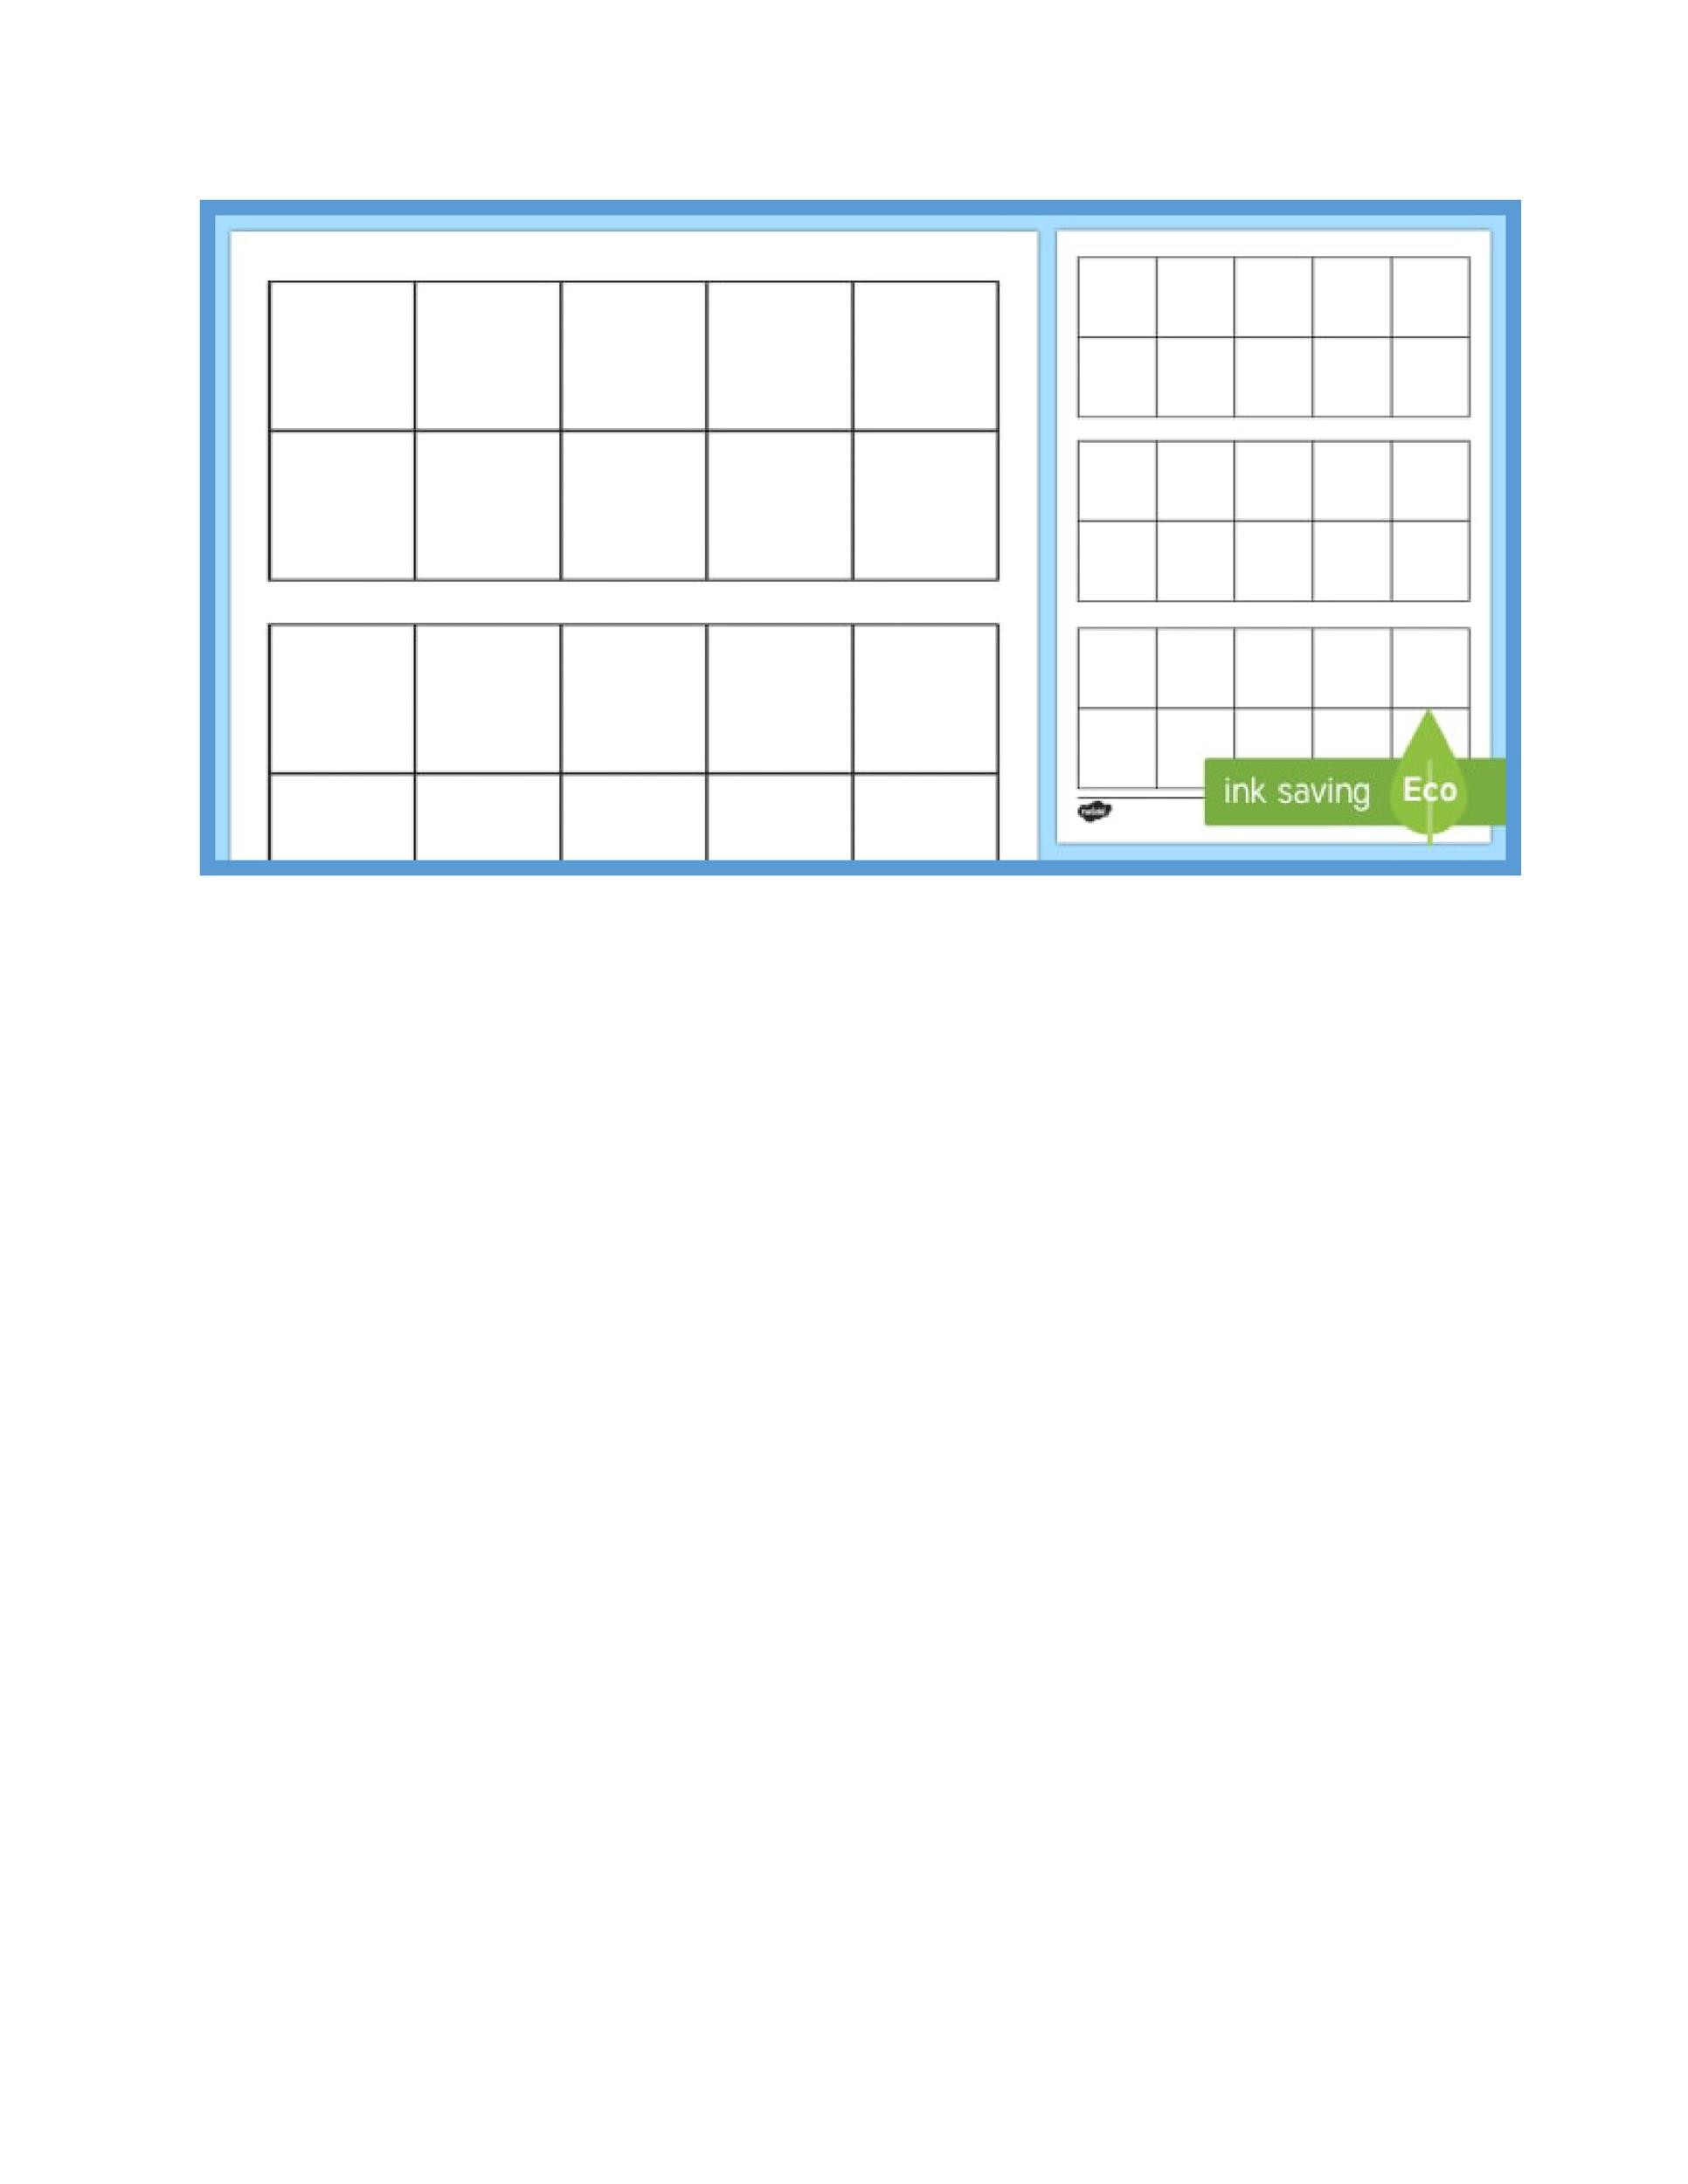 image about Free Printable Ten Frames referred to as 36 Printable 10 Body Templates (Absolutely free) ᐅ Template Lab